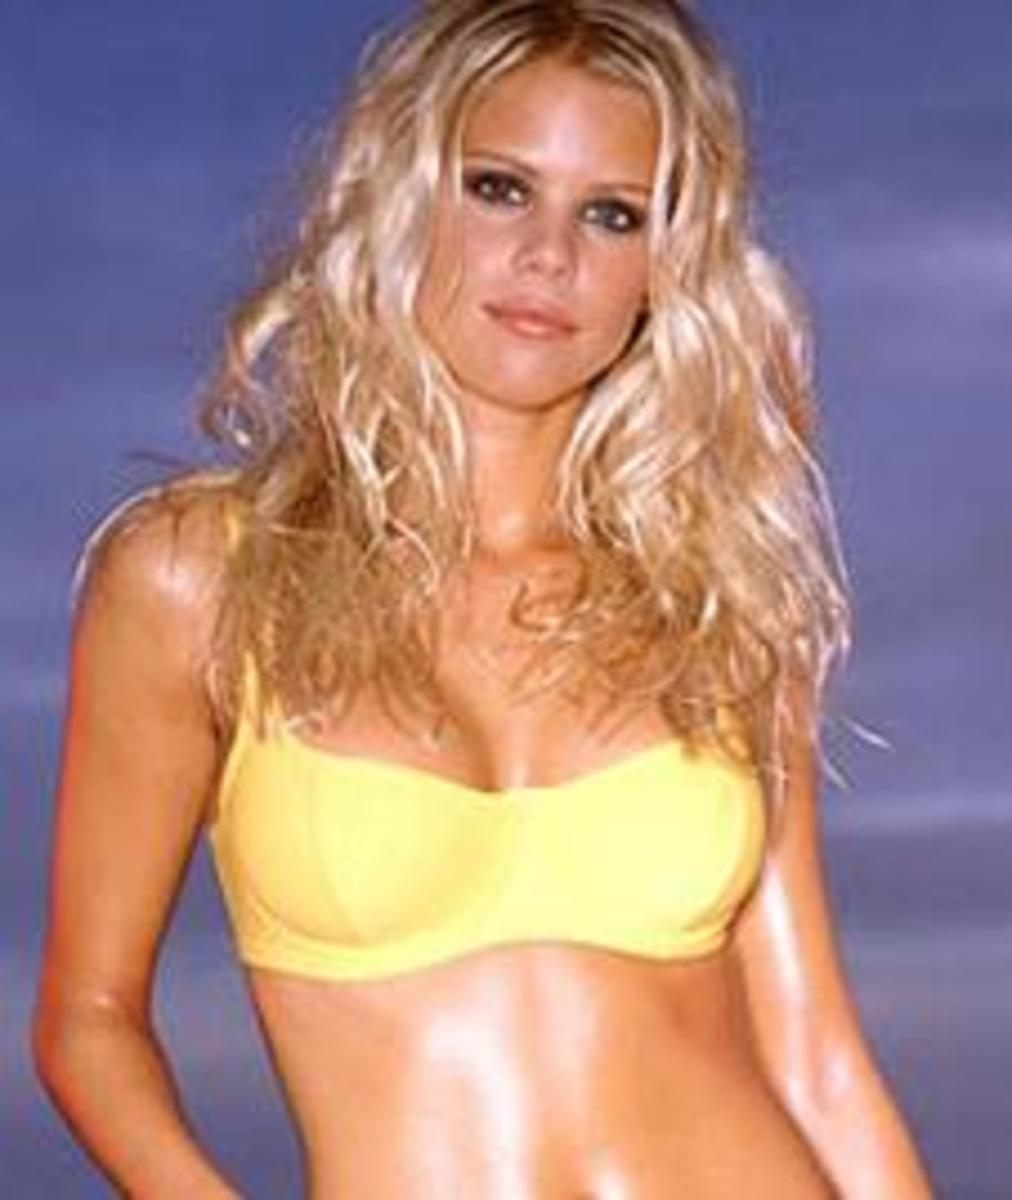 Elin Nordegren Photos